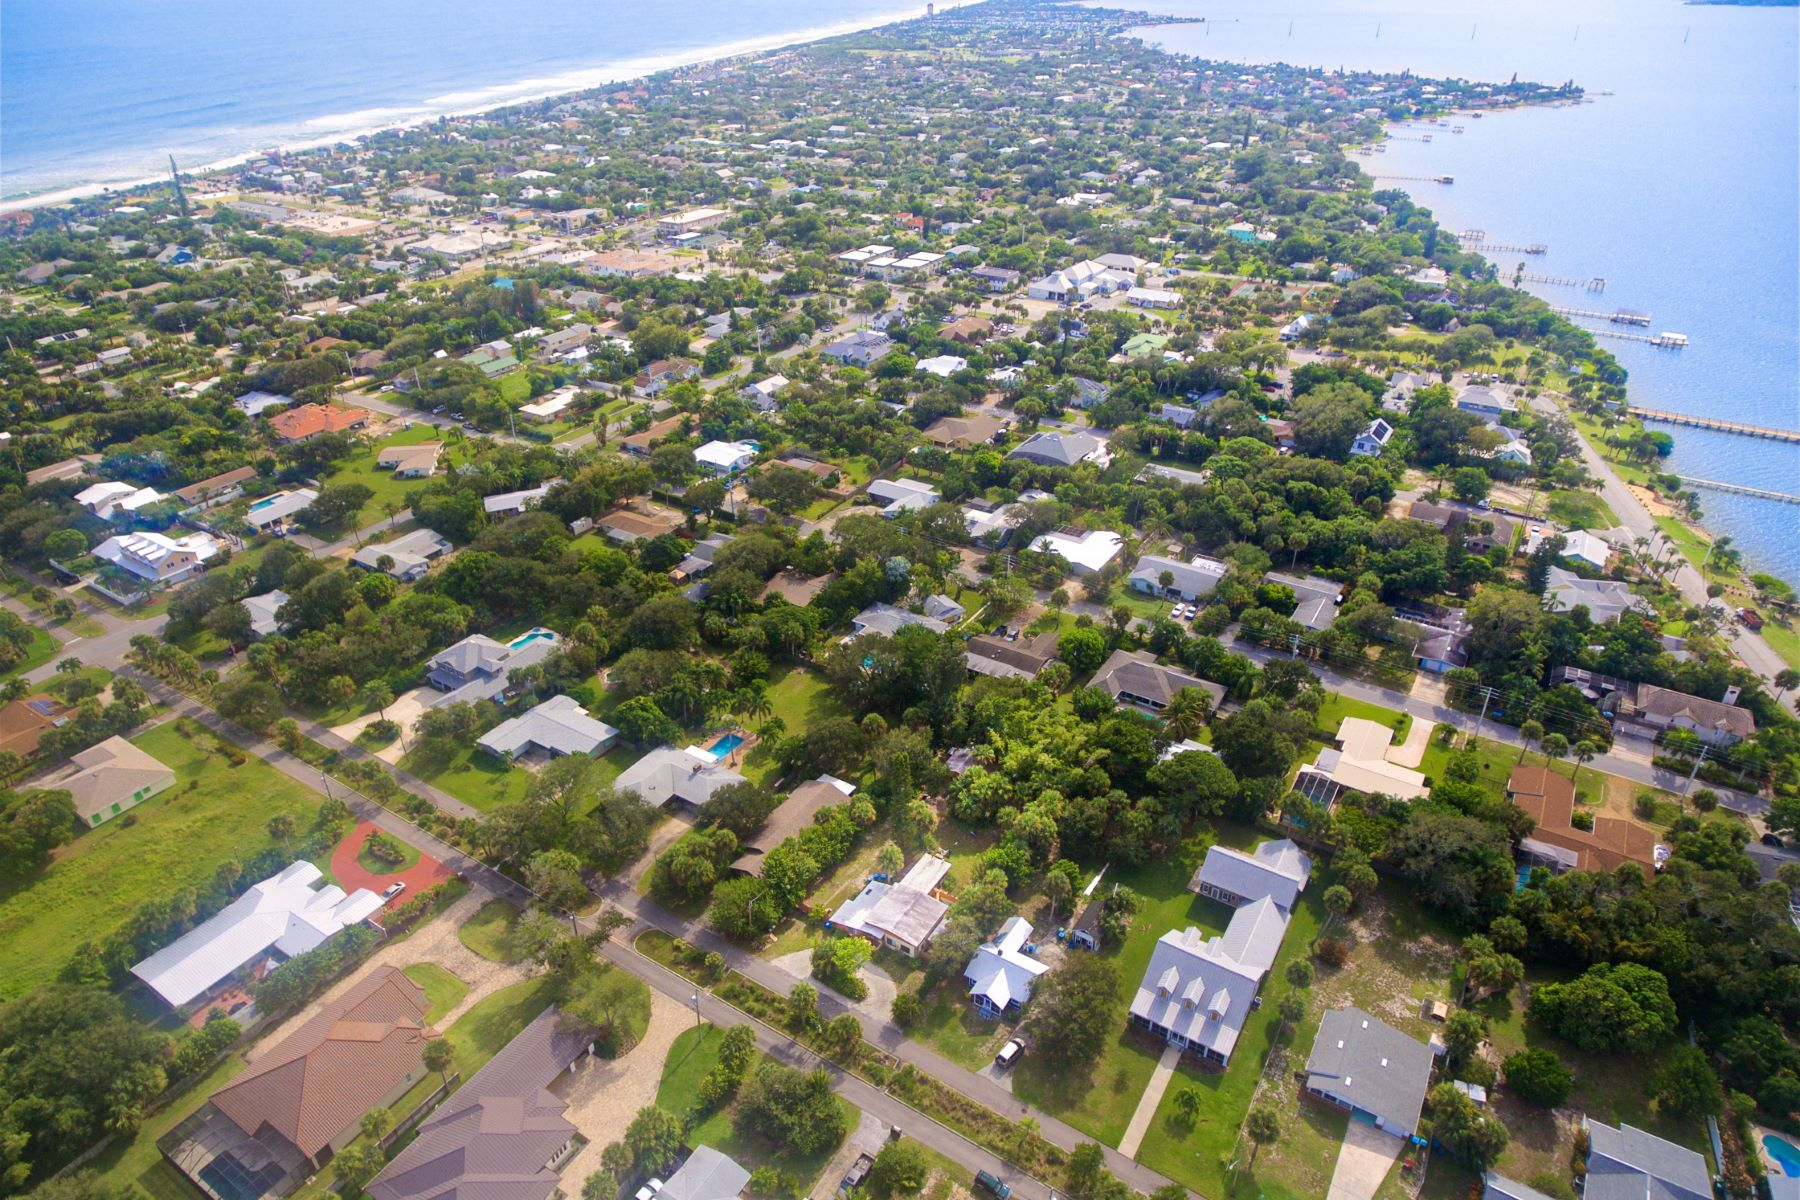 Land for Sale at Half Acre Property in Superior Melbourne Beach Location 523 Sunset Boulevard NULL Melbourne Beach, Florida 32951 United States